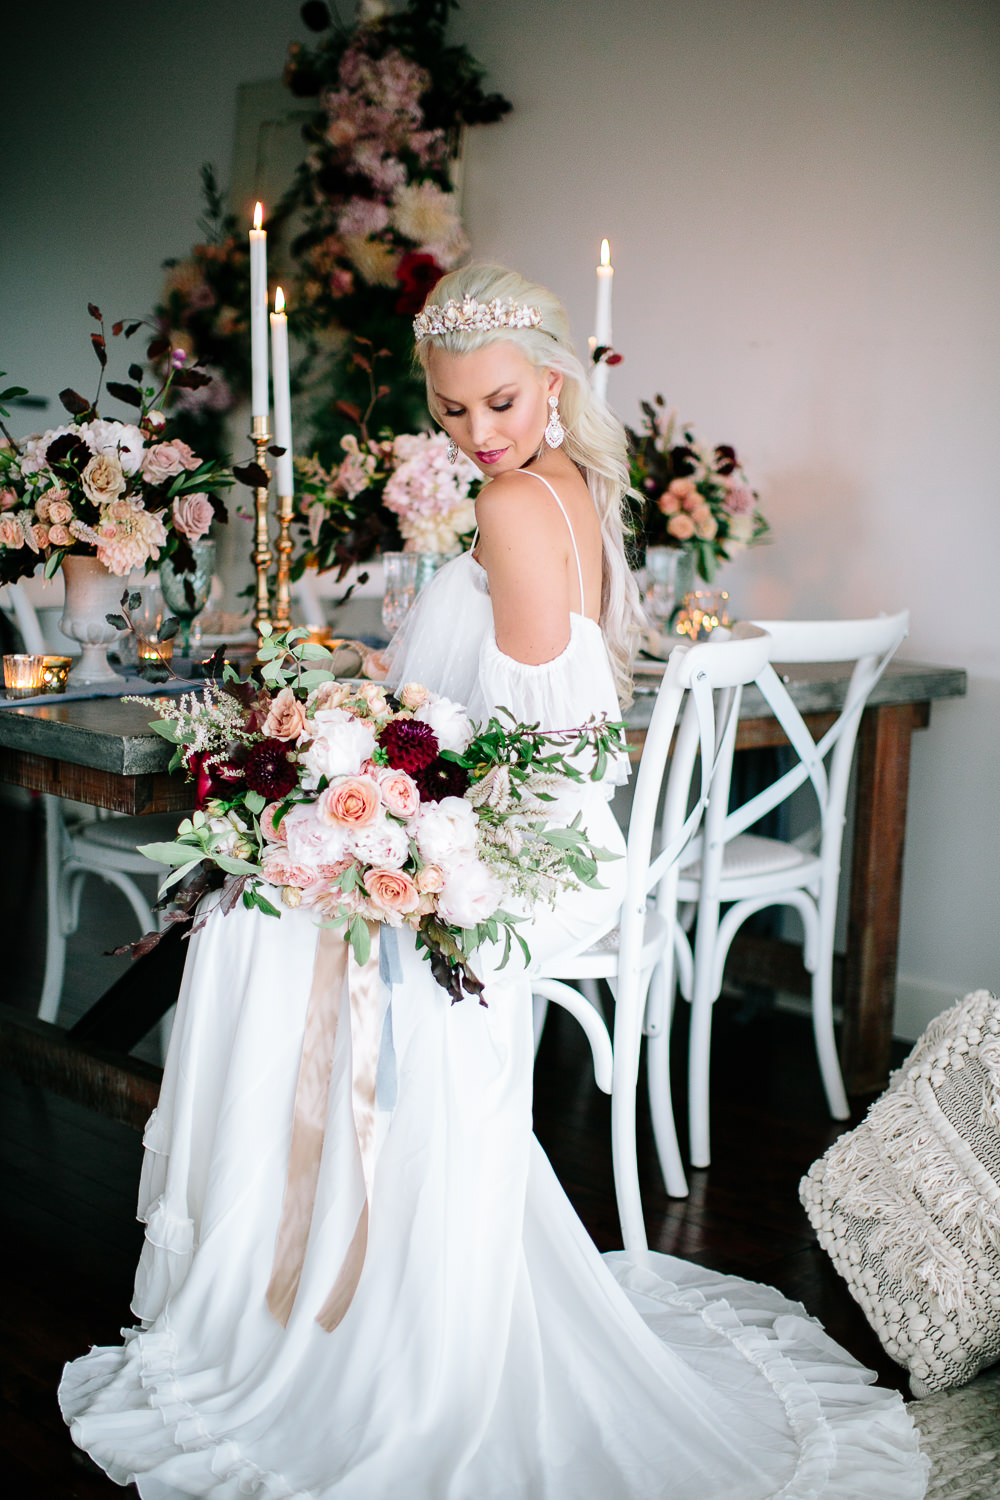 Styling - Chanele Rose flowers are highly passionate floral stylists and have proudly been involved in Styling & floral designing for many inspirational photo shoots – as seen here.